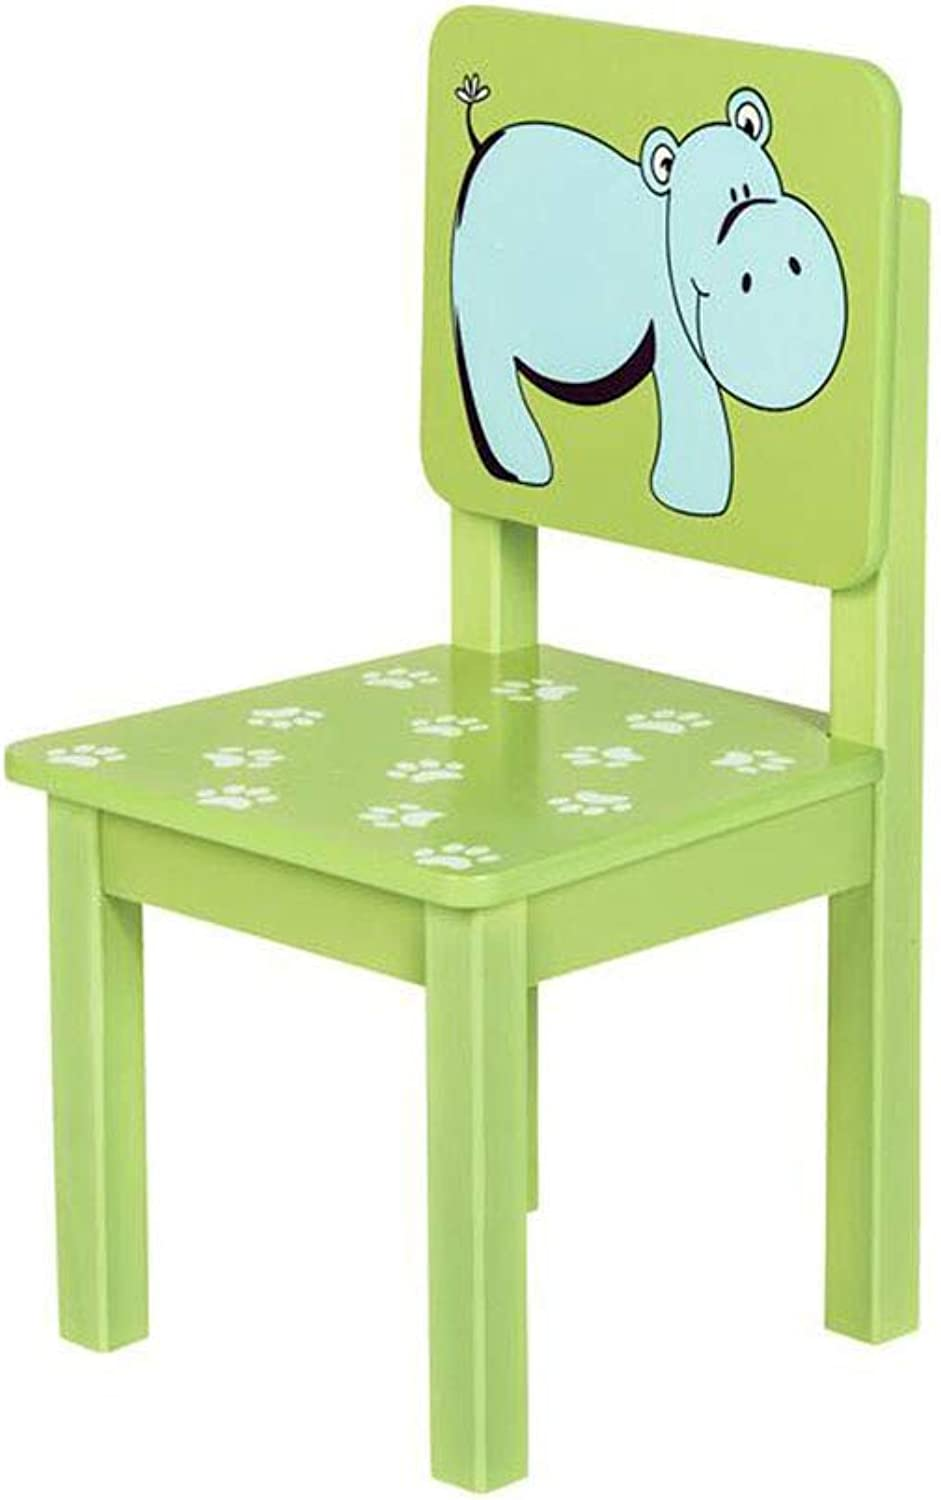 CJC Chair Stools Seat Picnic Party Home Bedroom Furniture Play Area Bedroom (color   T6)